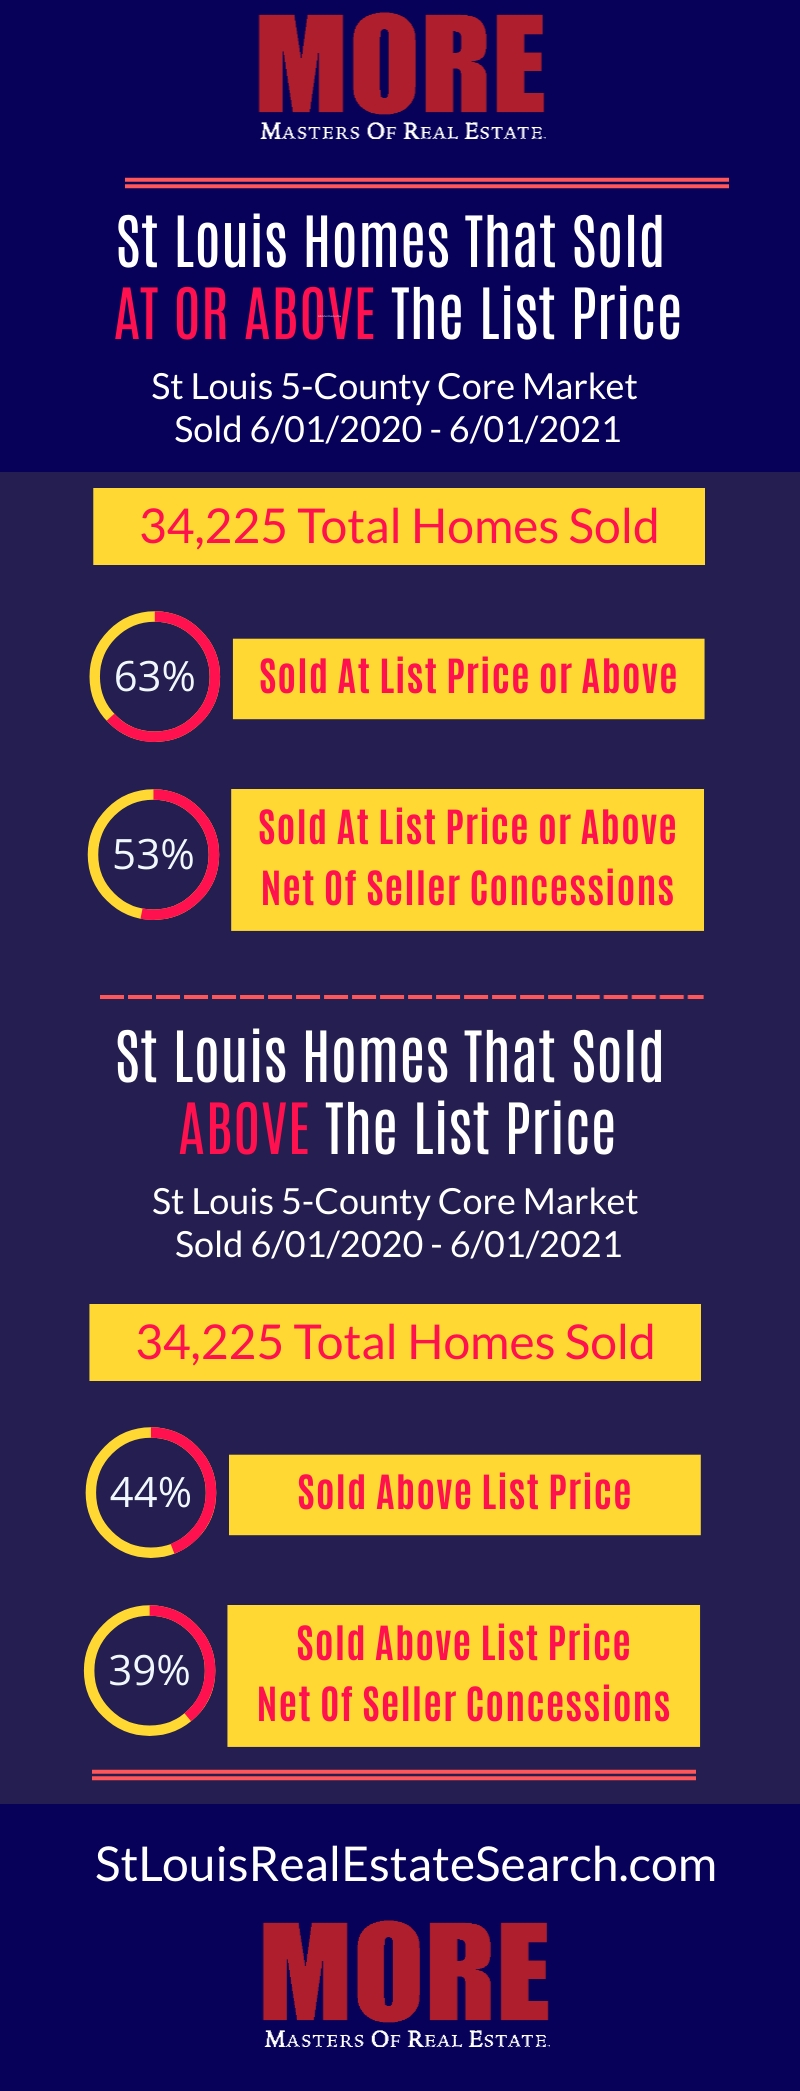 St Louis Homes Sold At Or Above List Price Infographic